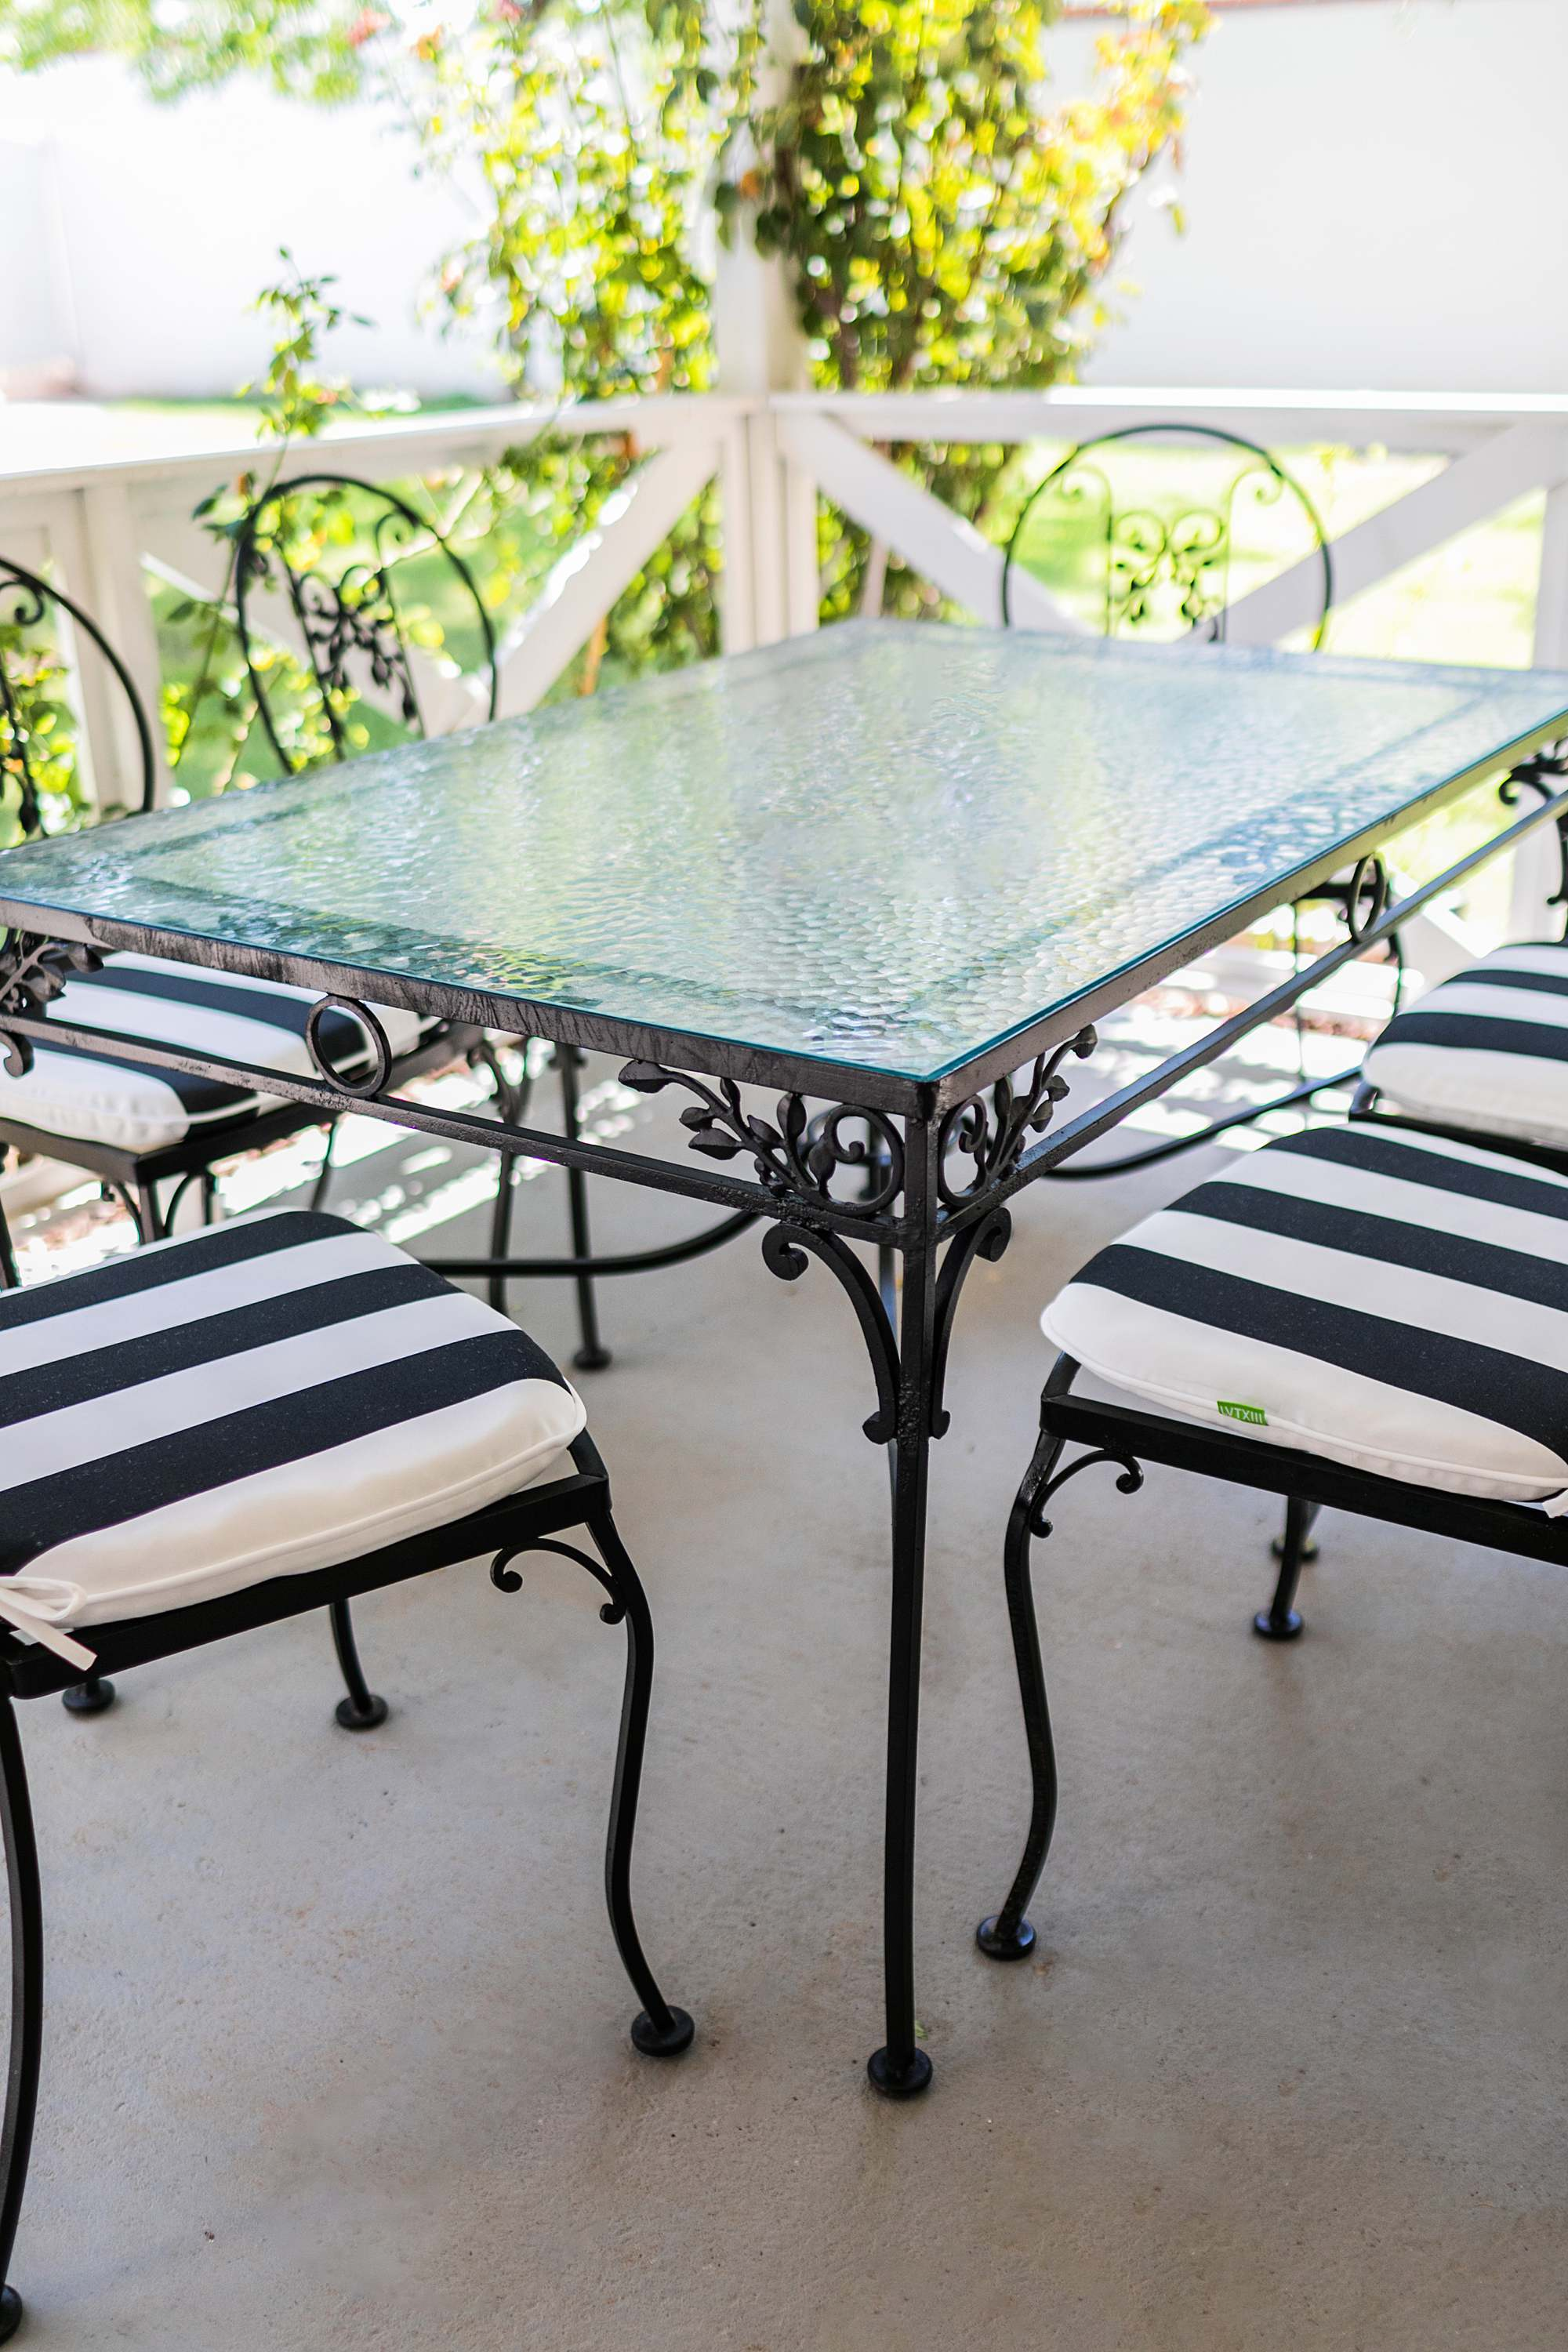 iron mid century modern grand millennial style outdoor table patio set with fresh black and white cushions from amazon - glass top phoenix lifestyle blogger Diana Elizabeth